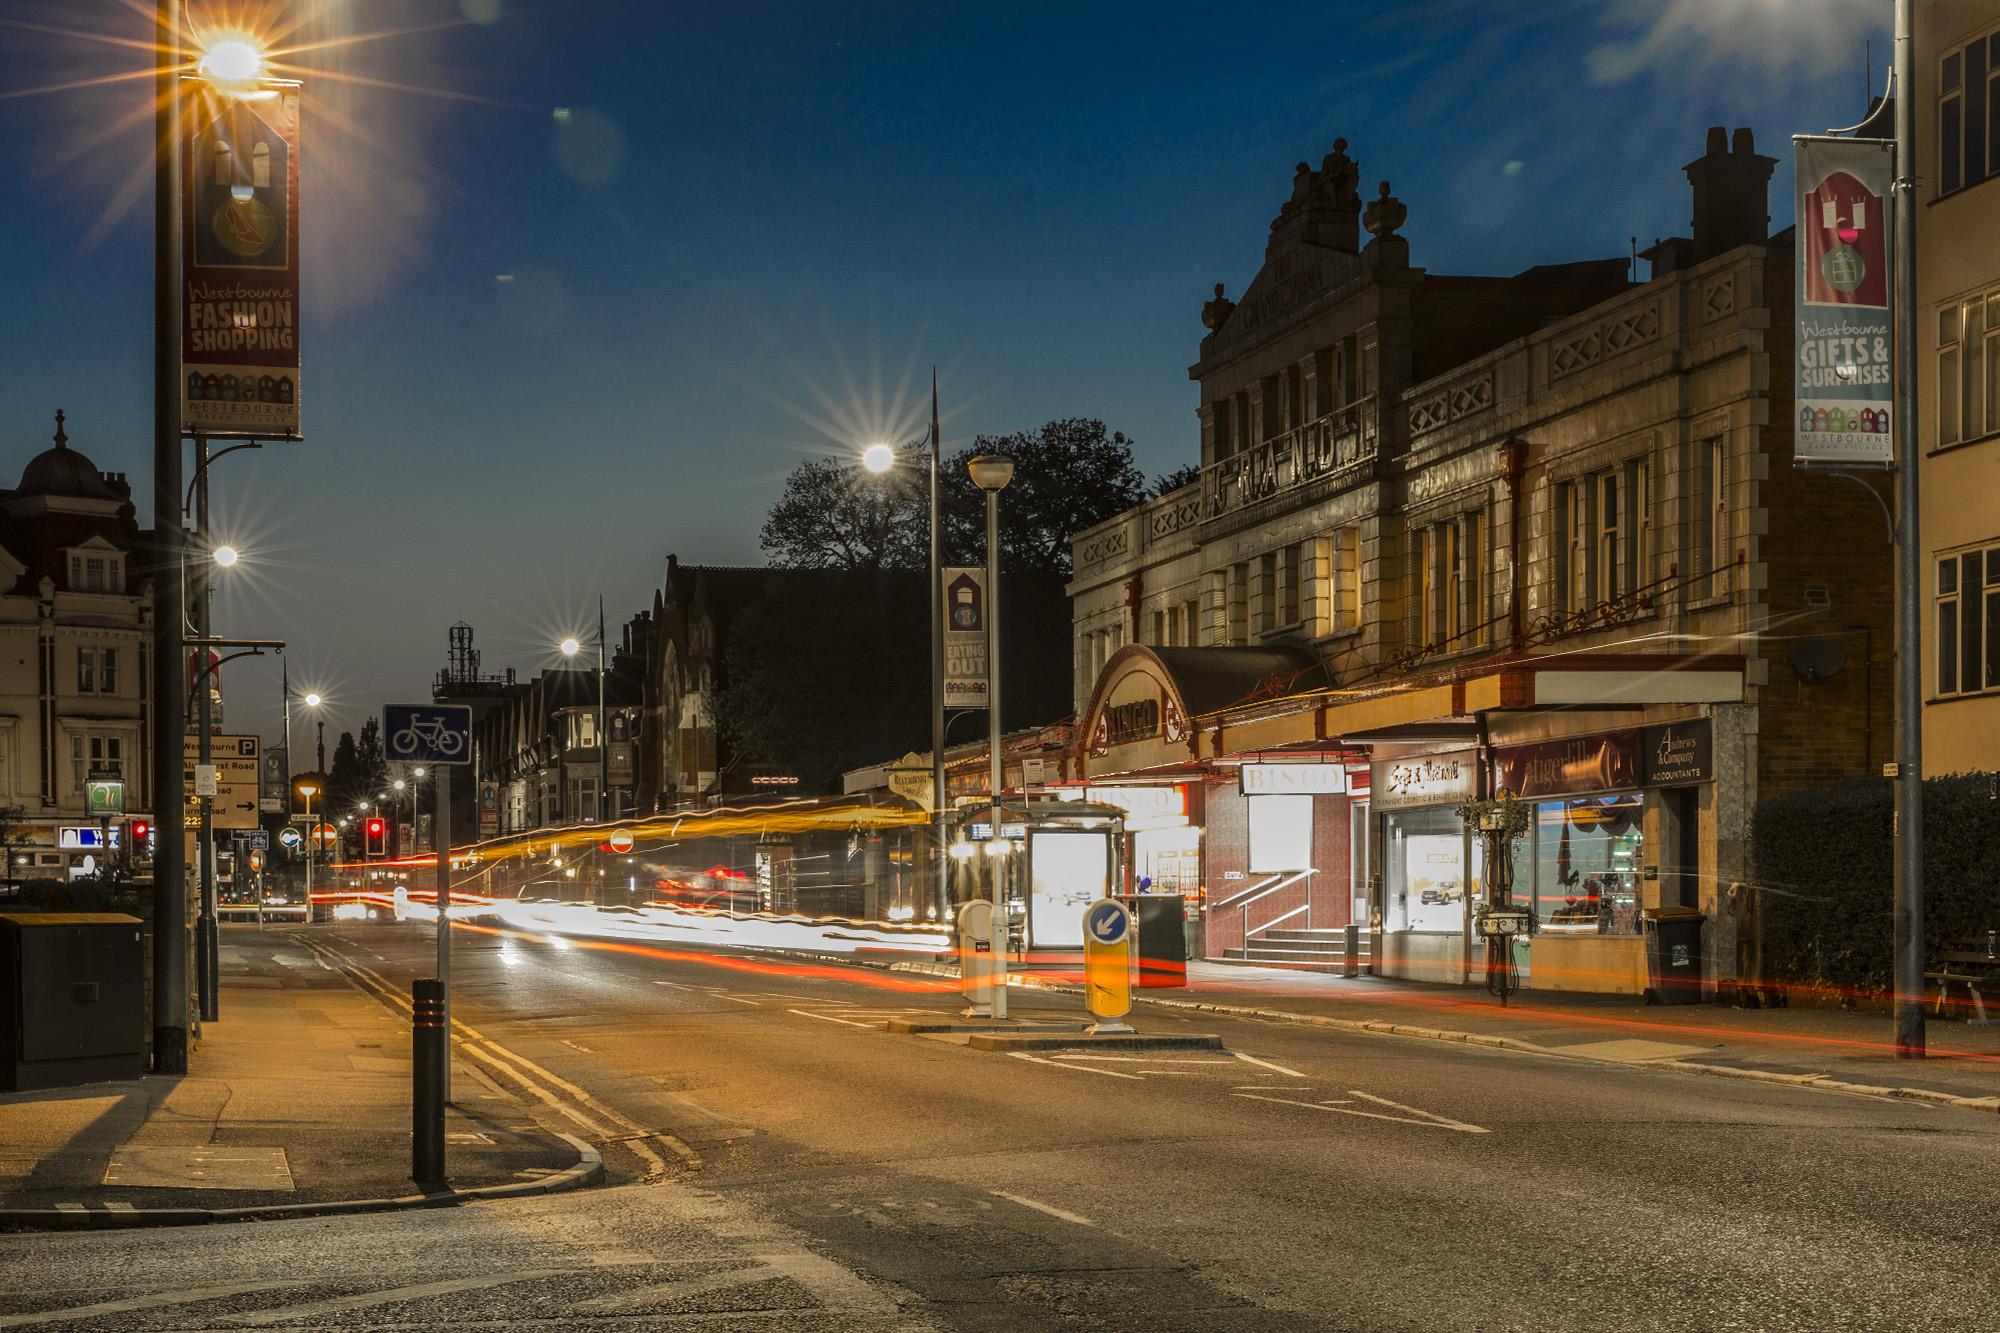 Westbourne Life: Grand Bingo Hall and looking west towards Westbourne.